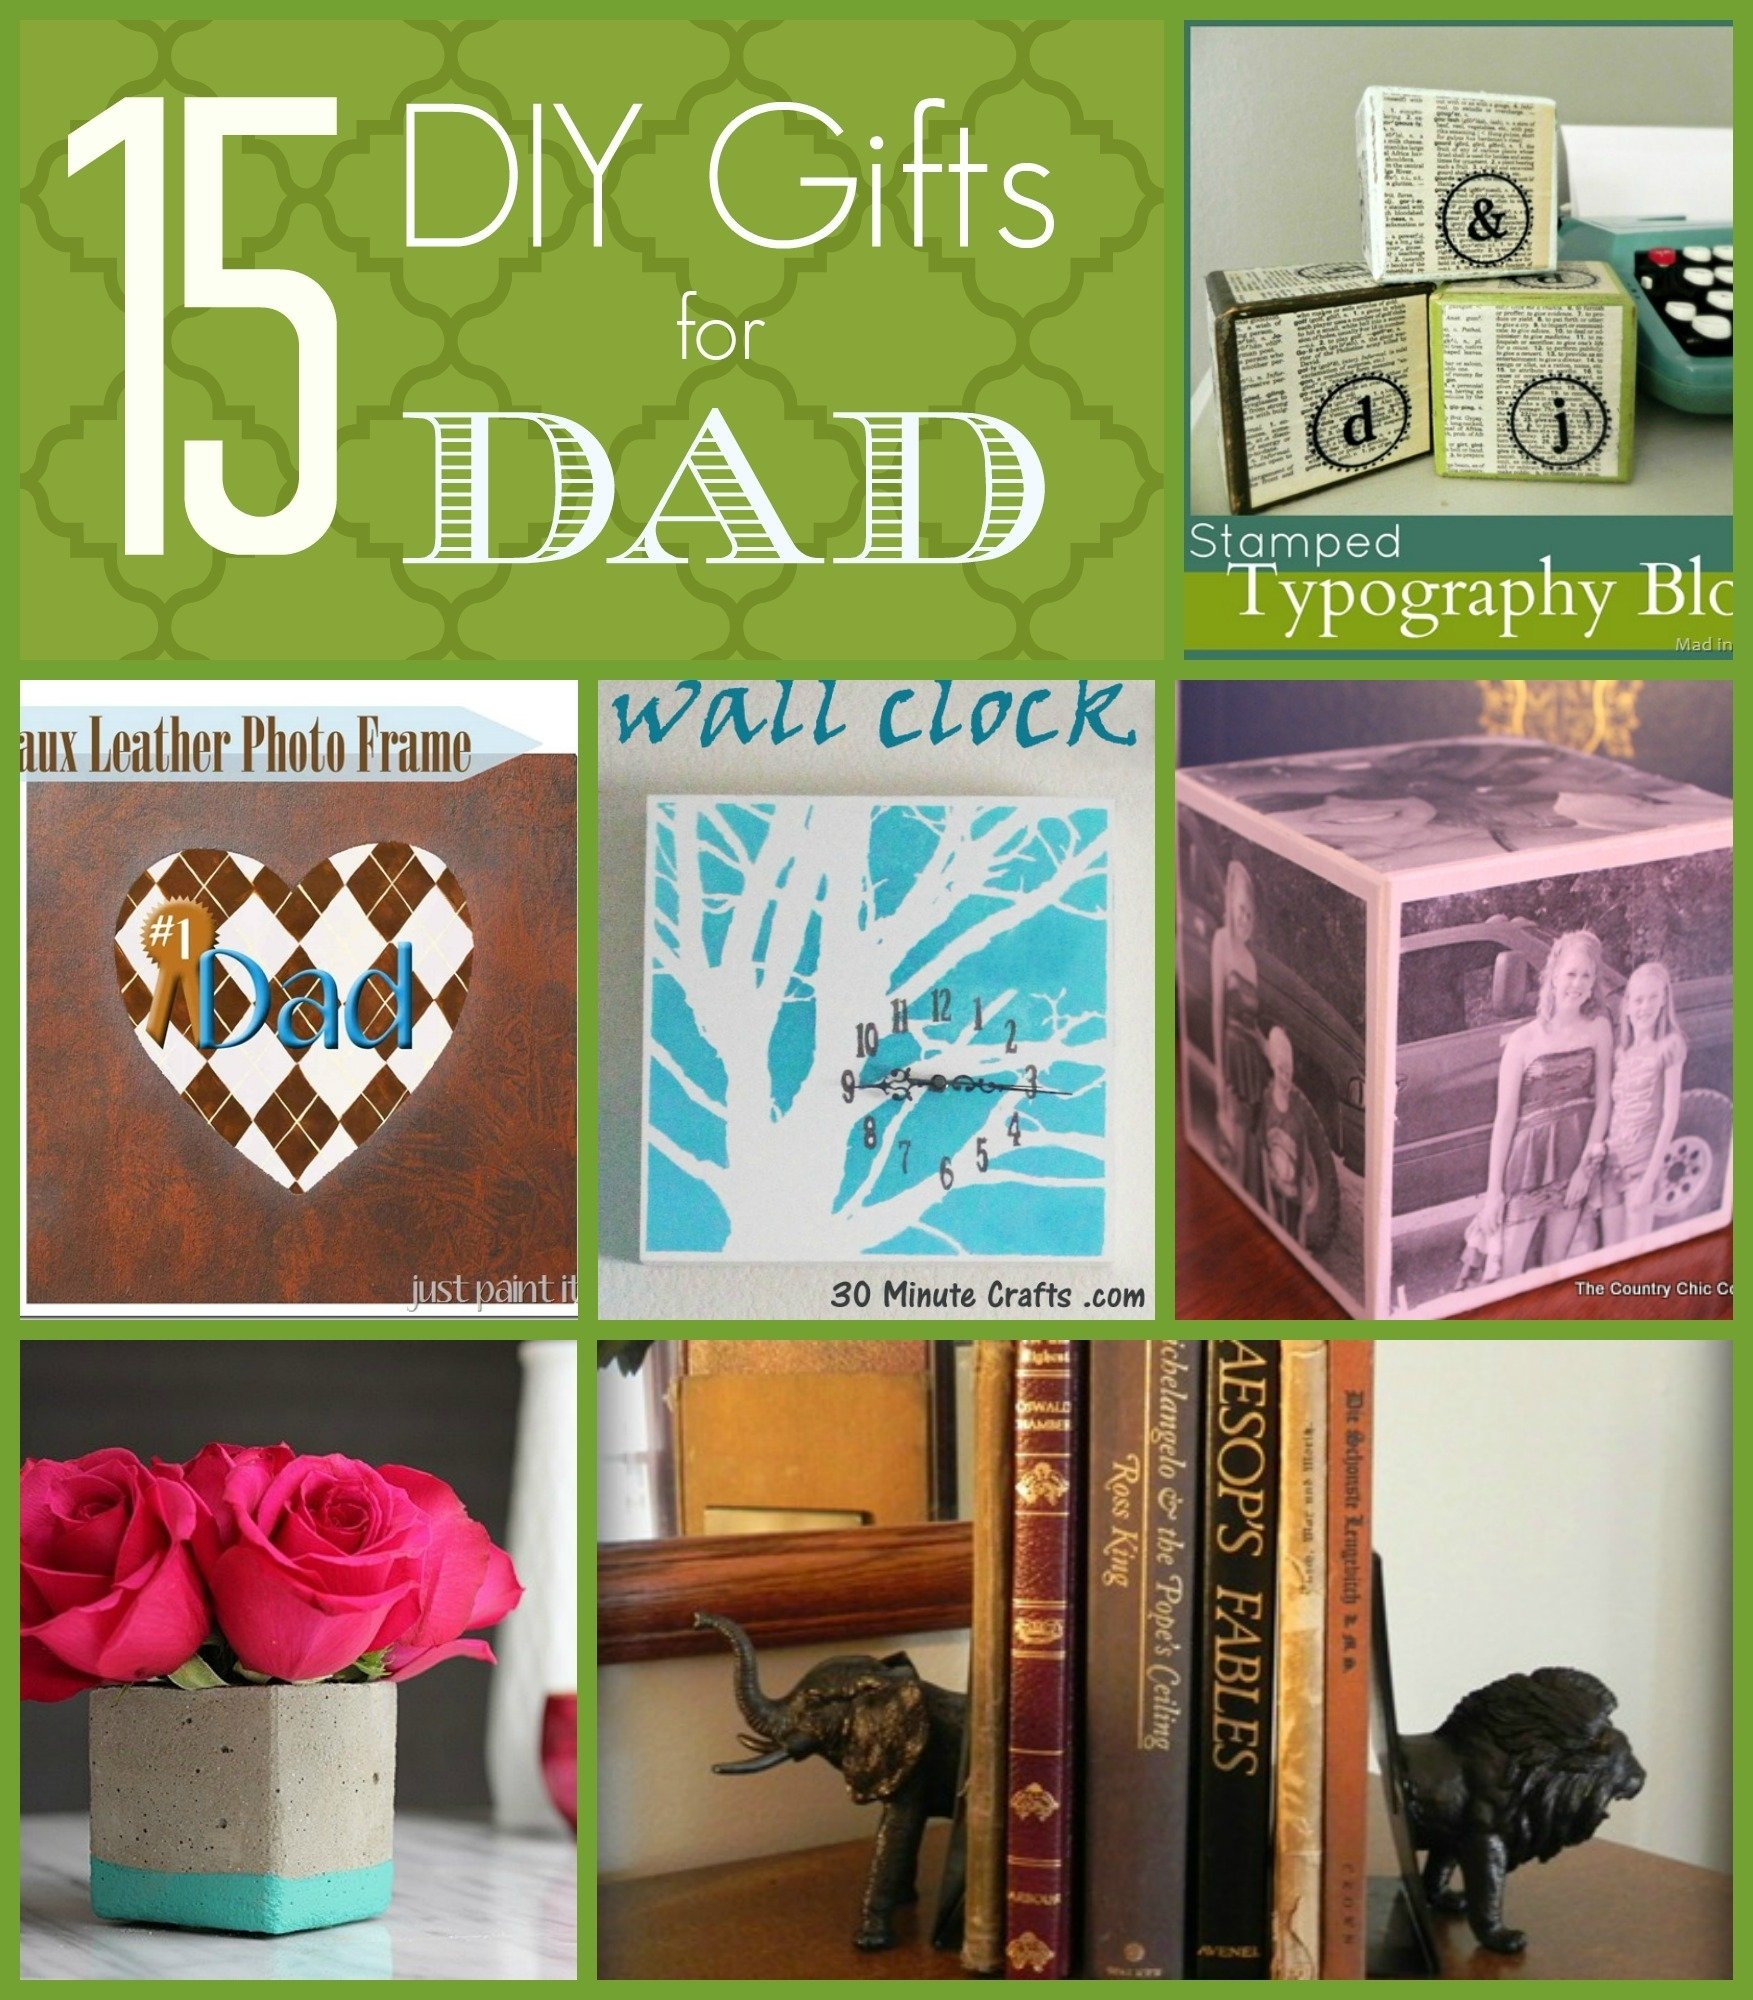 10 Elegant Homemade Gift Ideas For Dad diy for dad diy presents home design gifts your pas cool and easy 2021